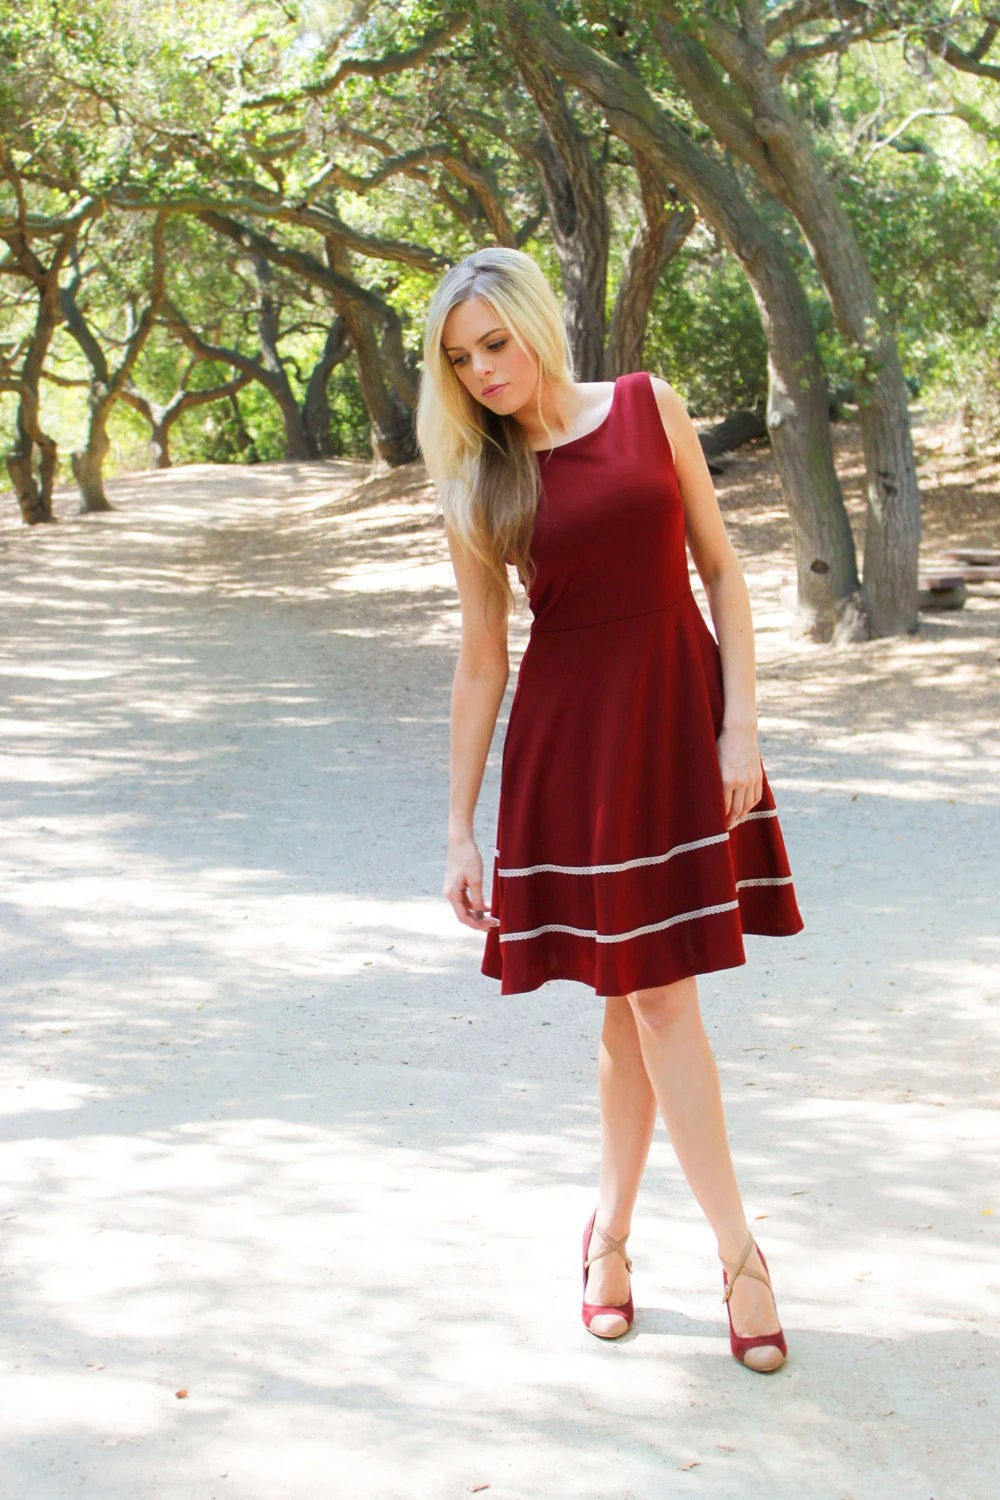 COQUETTE PORT - Cranberry burgundy red dress with pockets / flared circle skirt // ivory crochet / bridesmaid // vintage inspired / holiday - FleetCollection